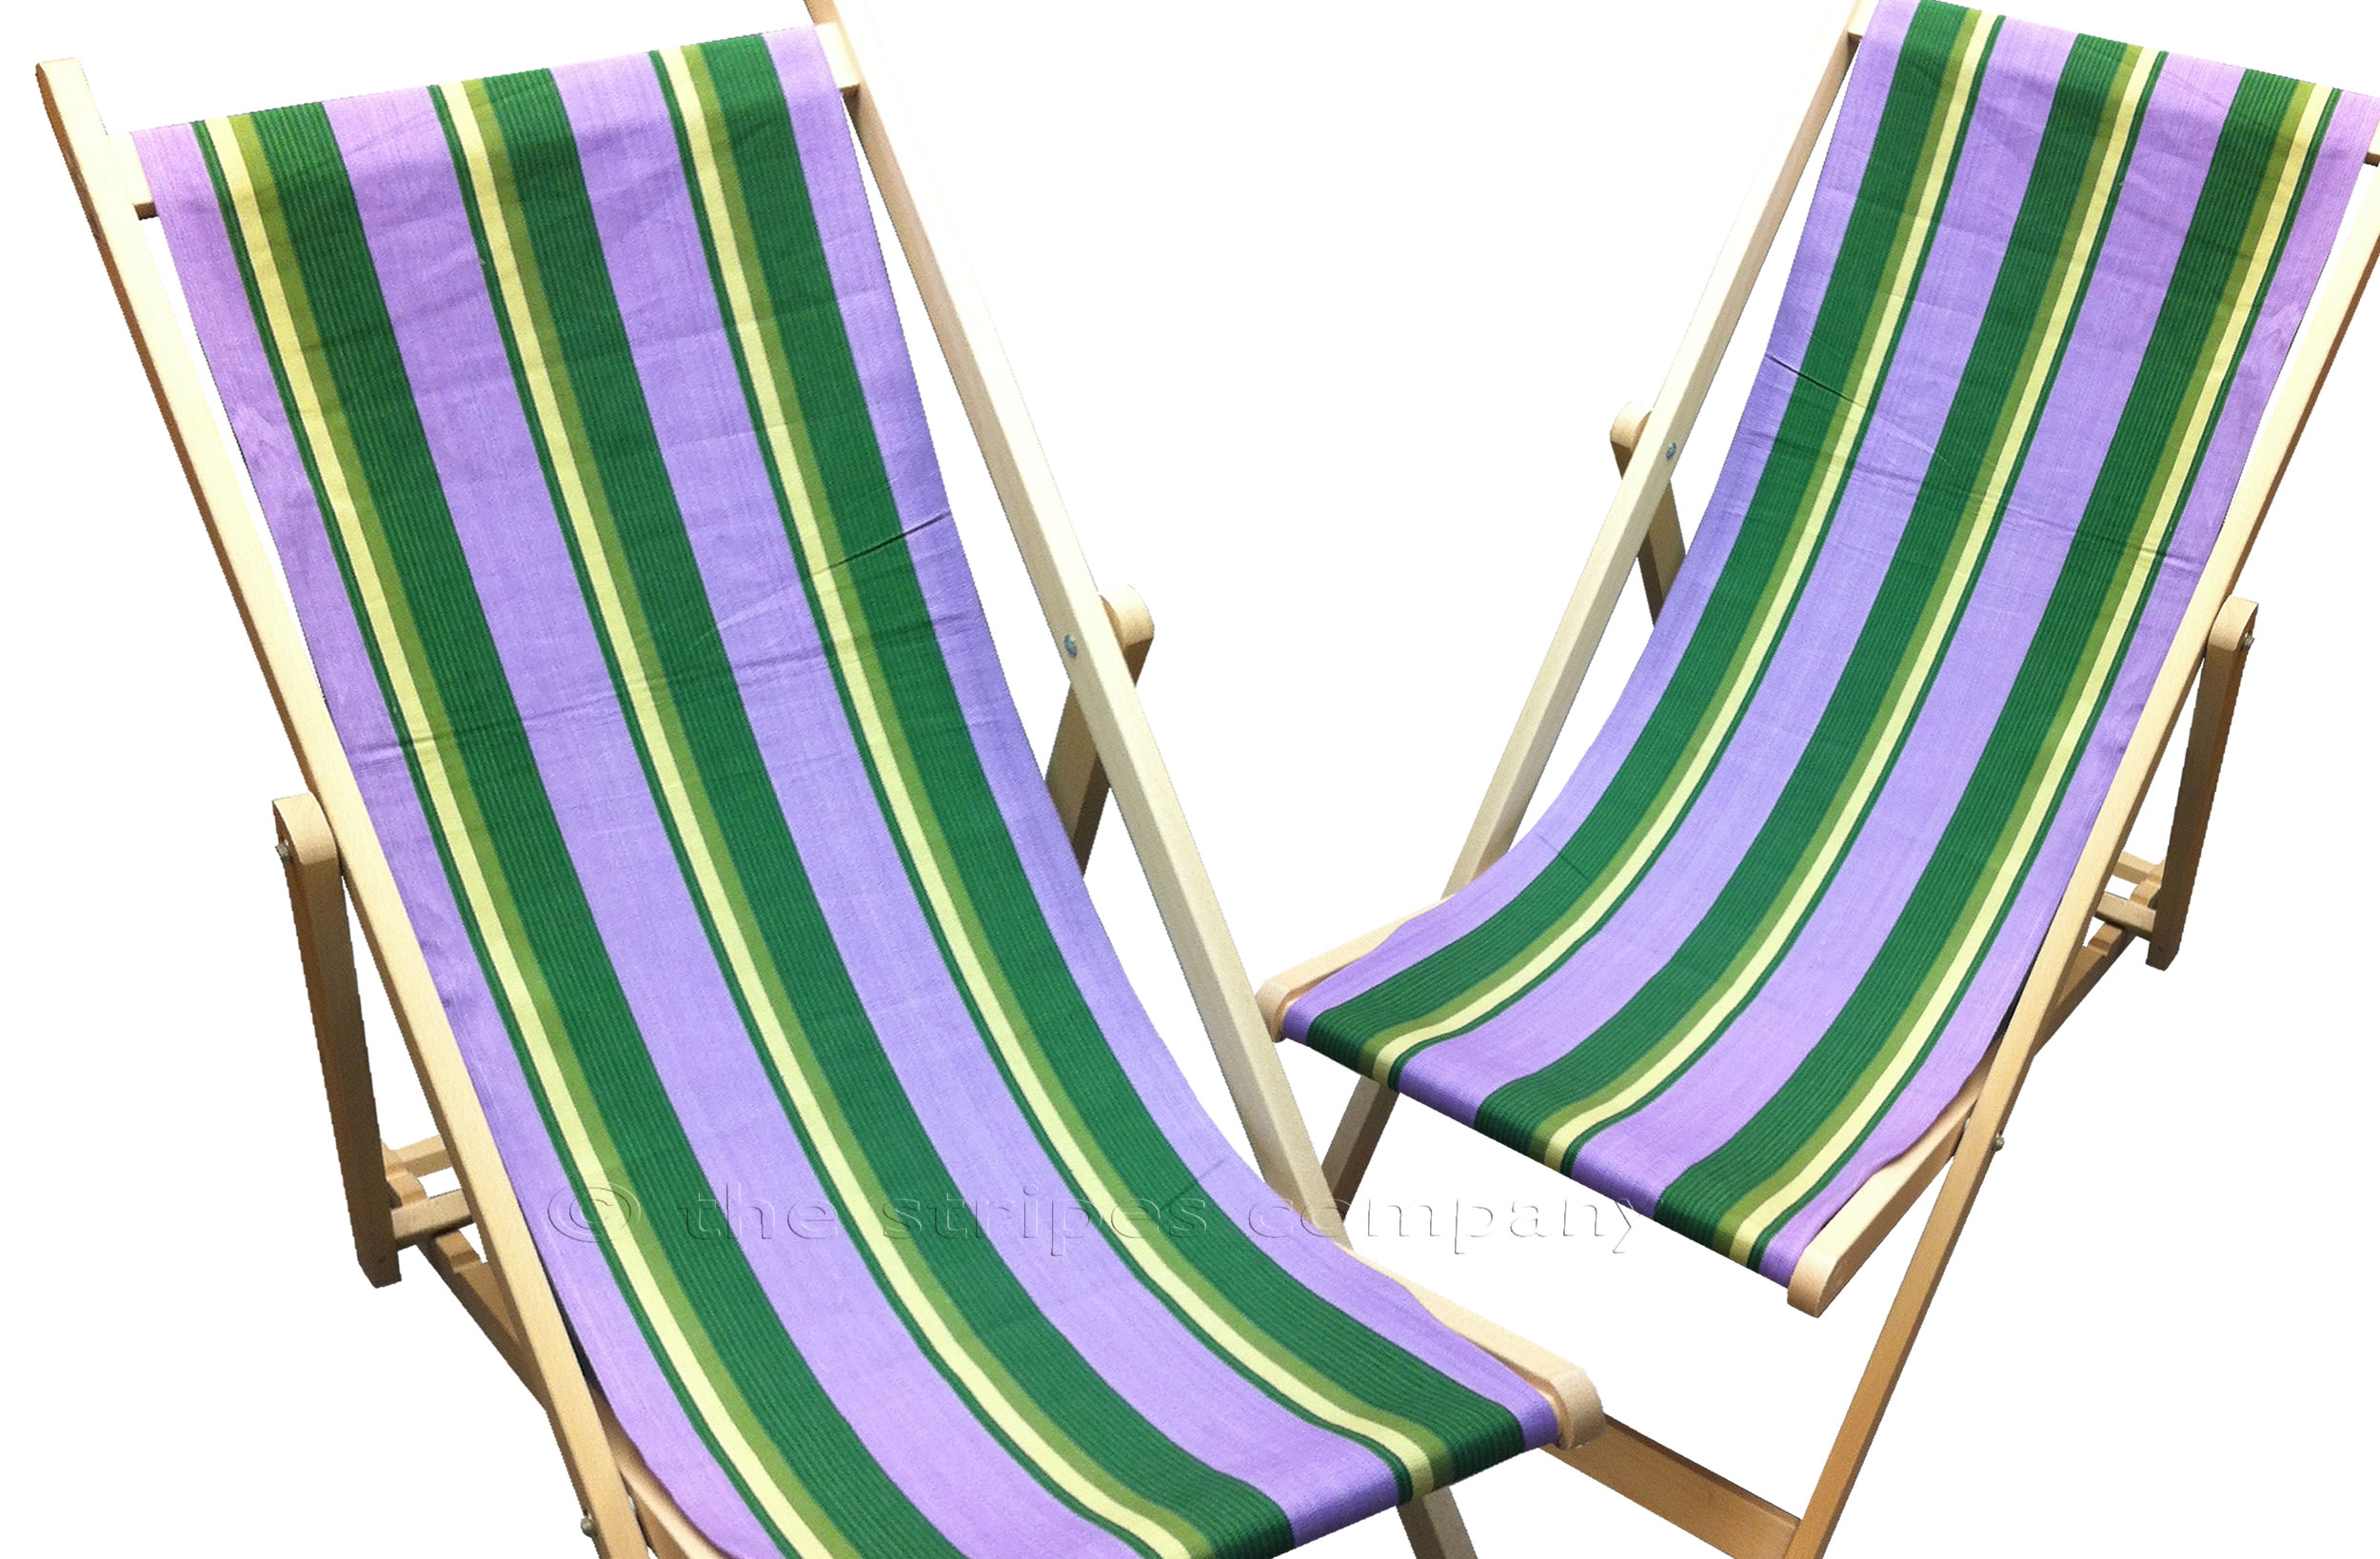 Lilac Deckchairs | Wooden Folding Deck Chairs - Hip Hop Stripes